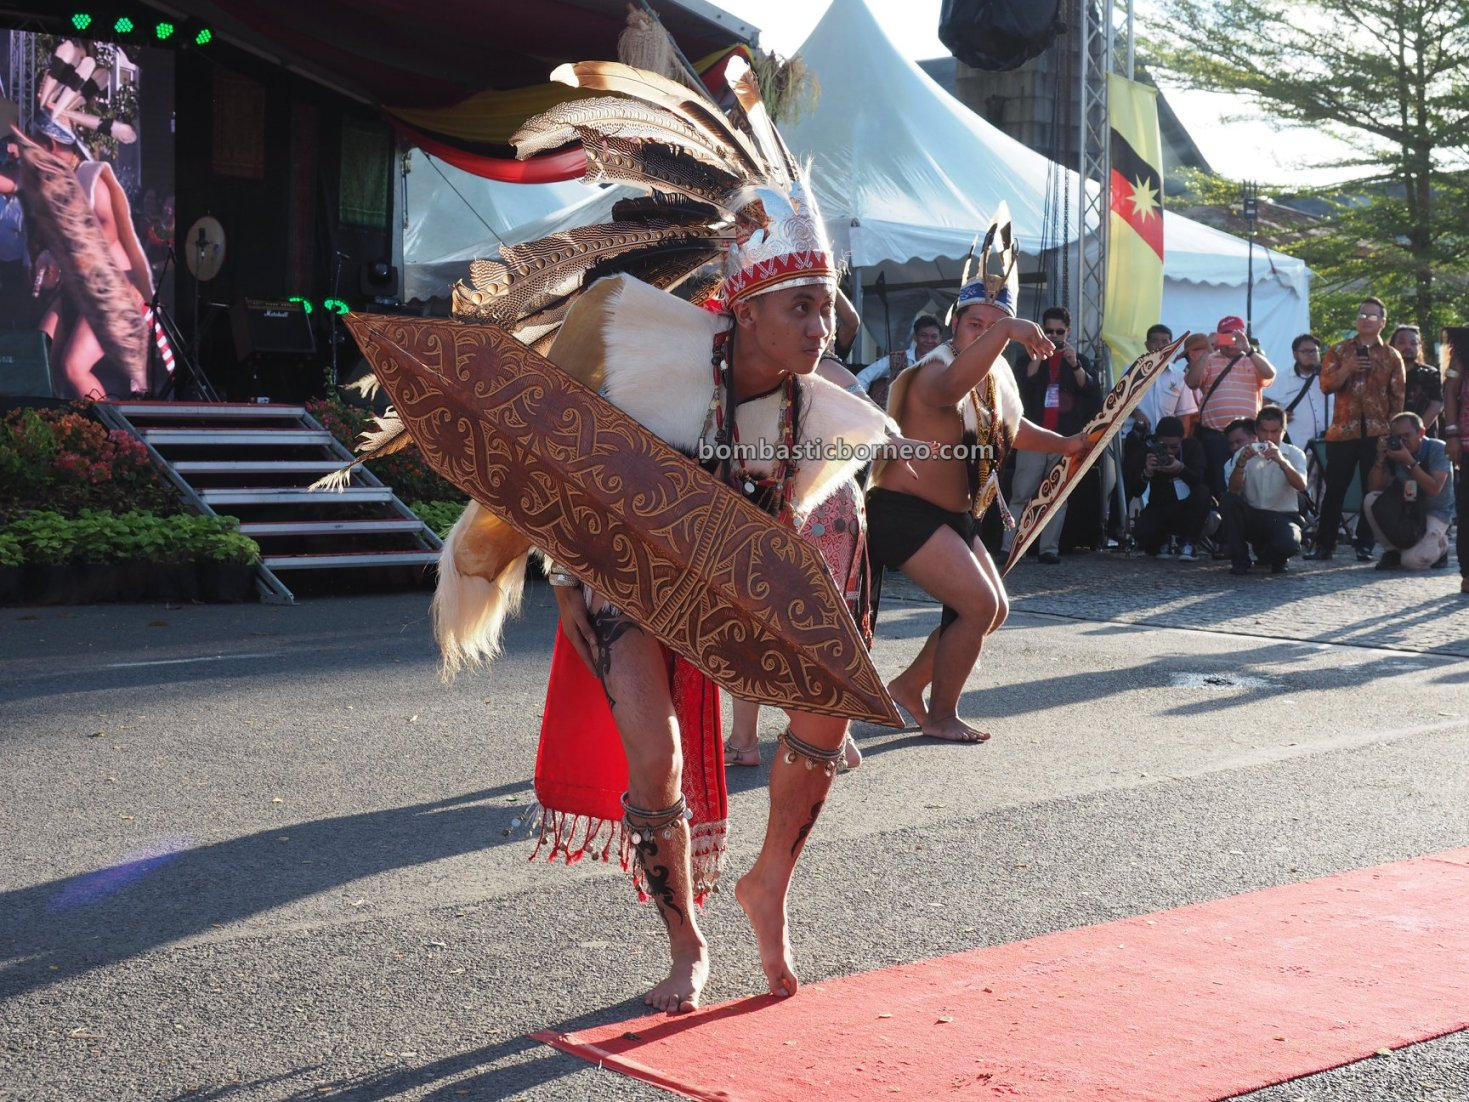 Street Parade, authentic, budaya, destination, Malaysia, indigenous, tribal, tourism, Travel guide, Trans Borneo, 探索婆罗洲游踪, 砂拉越肯雅族部落, 马来西亚原住民, Orang Ulu, Dayak Kenyah,